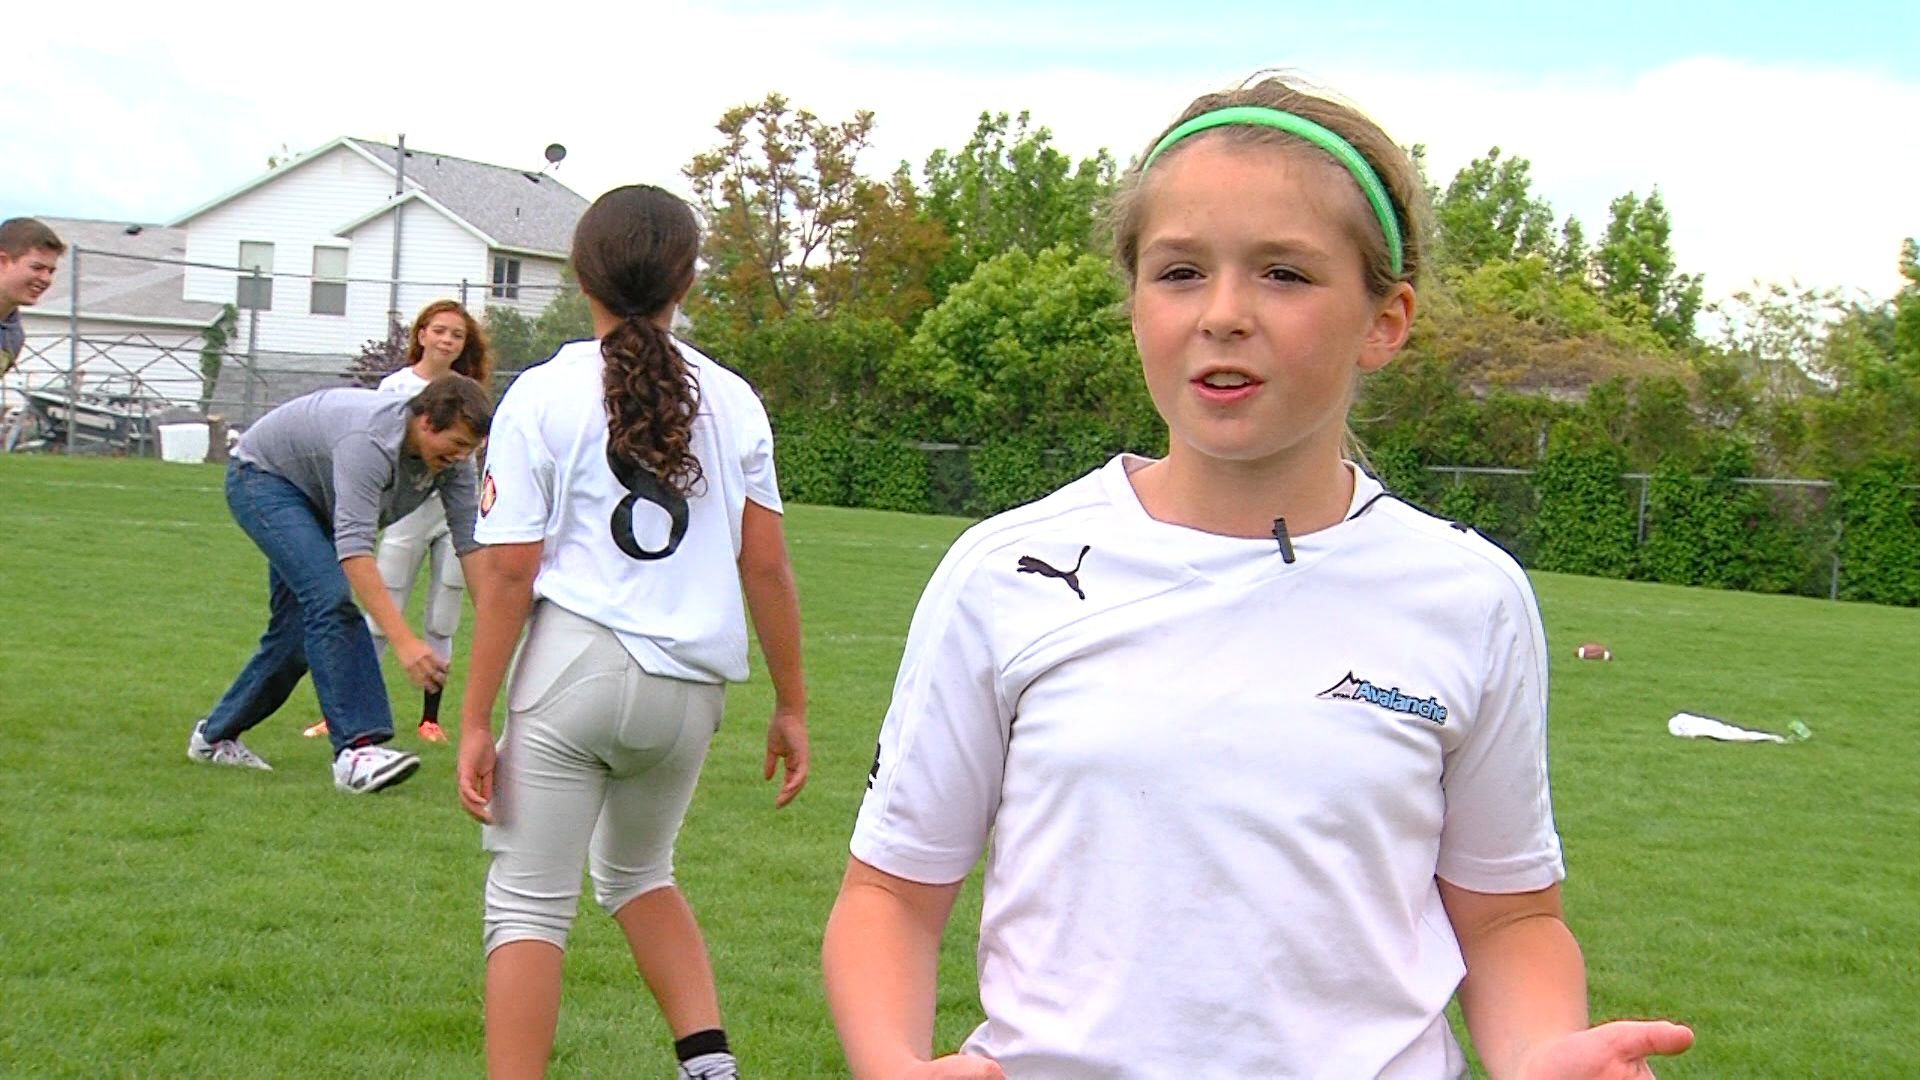 Utah Hosts First Girls Only Tackle Football League With Images Tackle Football Football League Football Girls